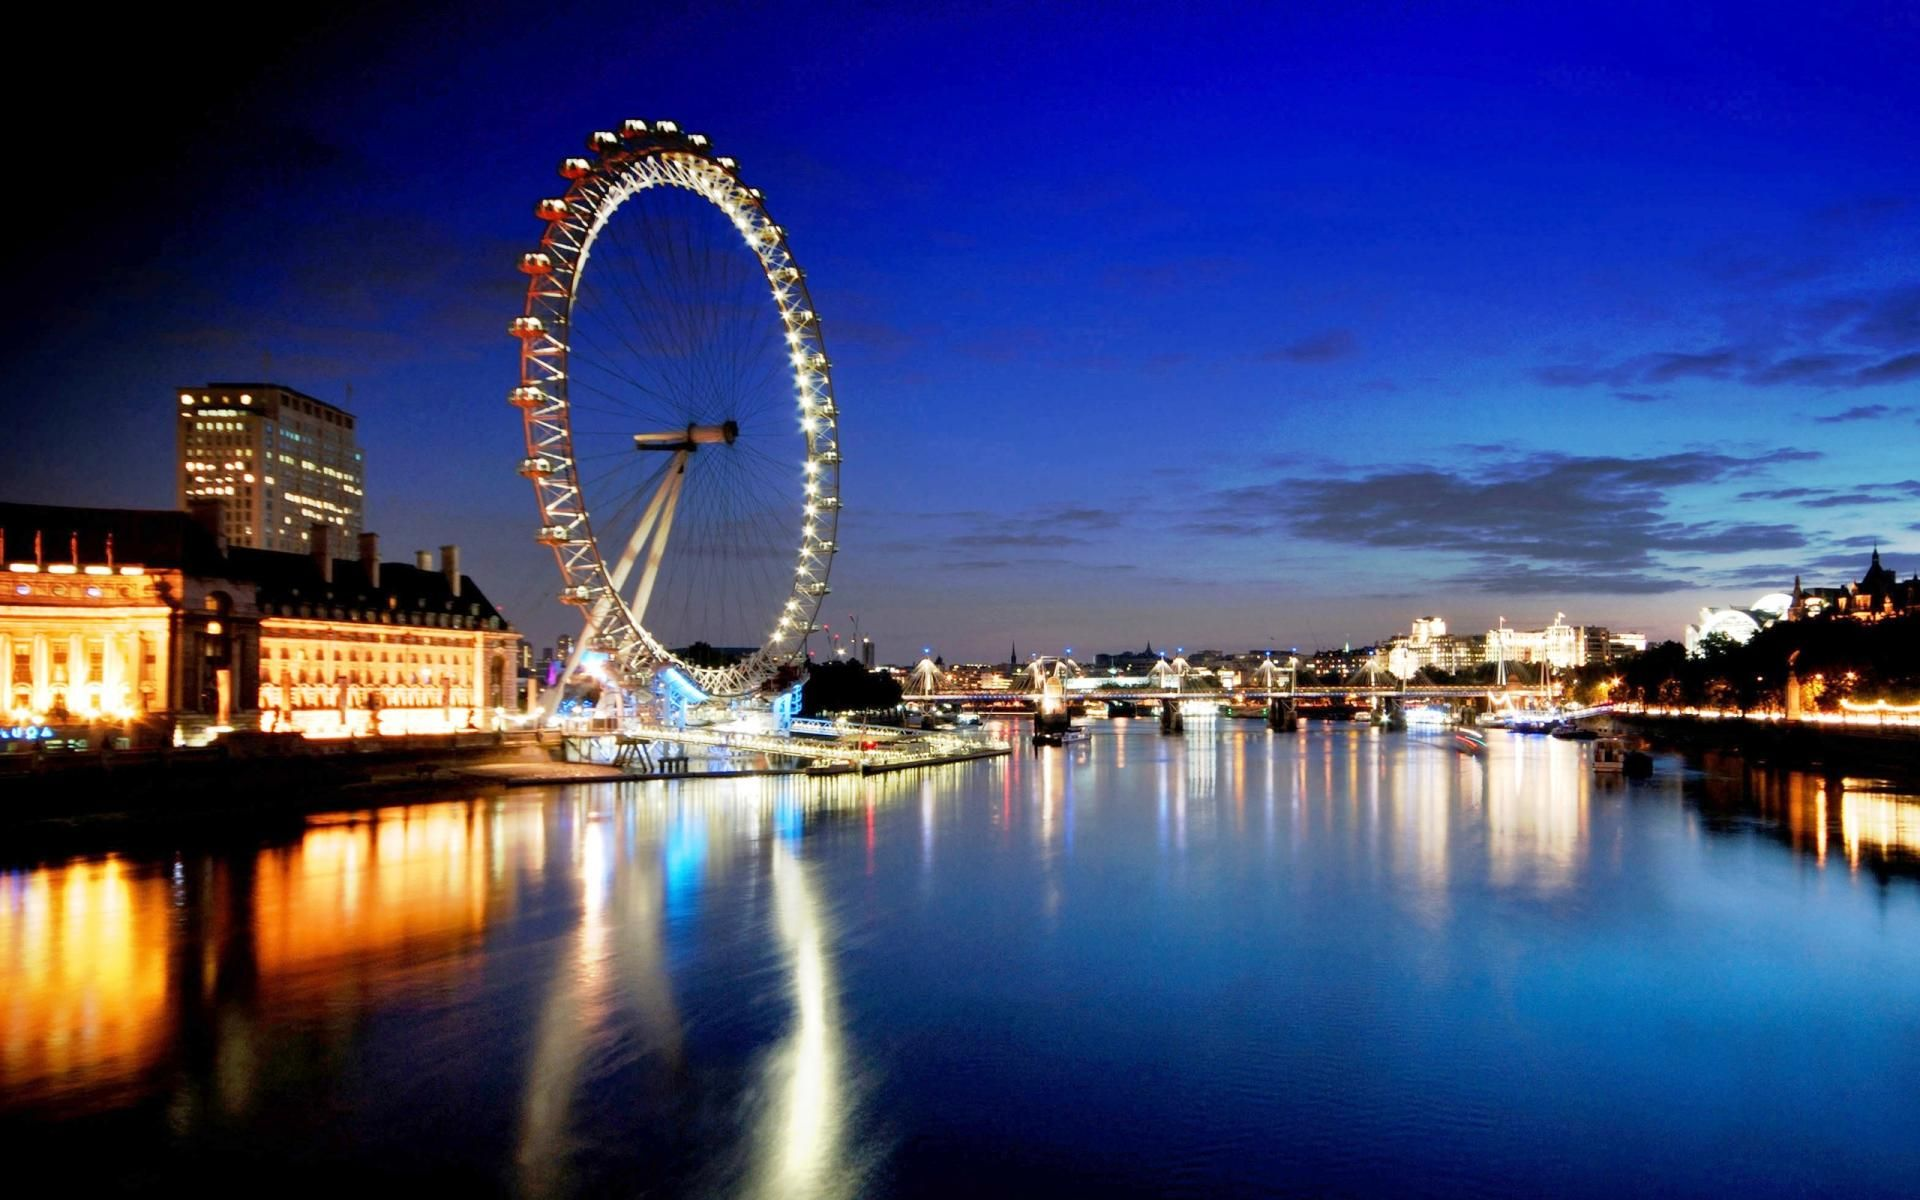 london ferris wallpaper download | hd wallpapers | pinterest